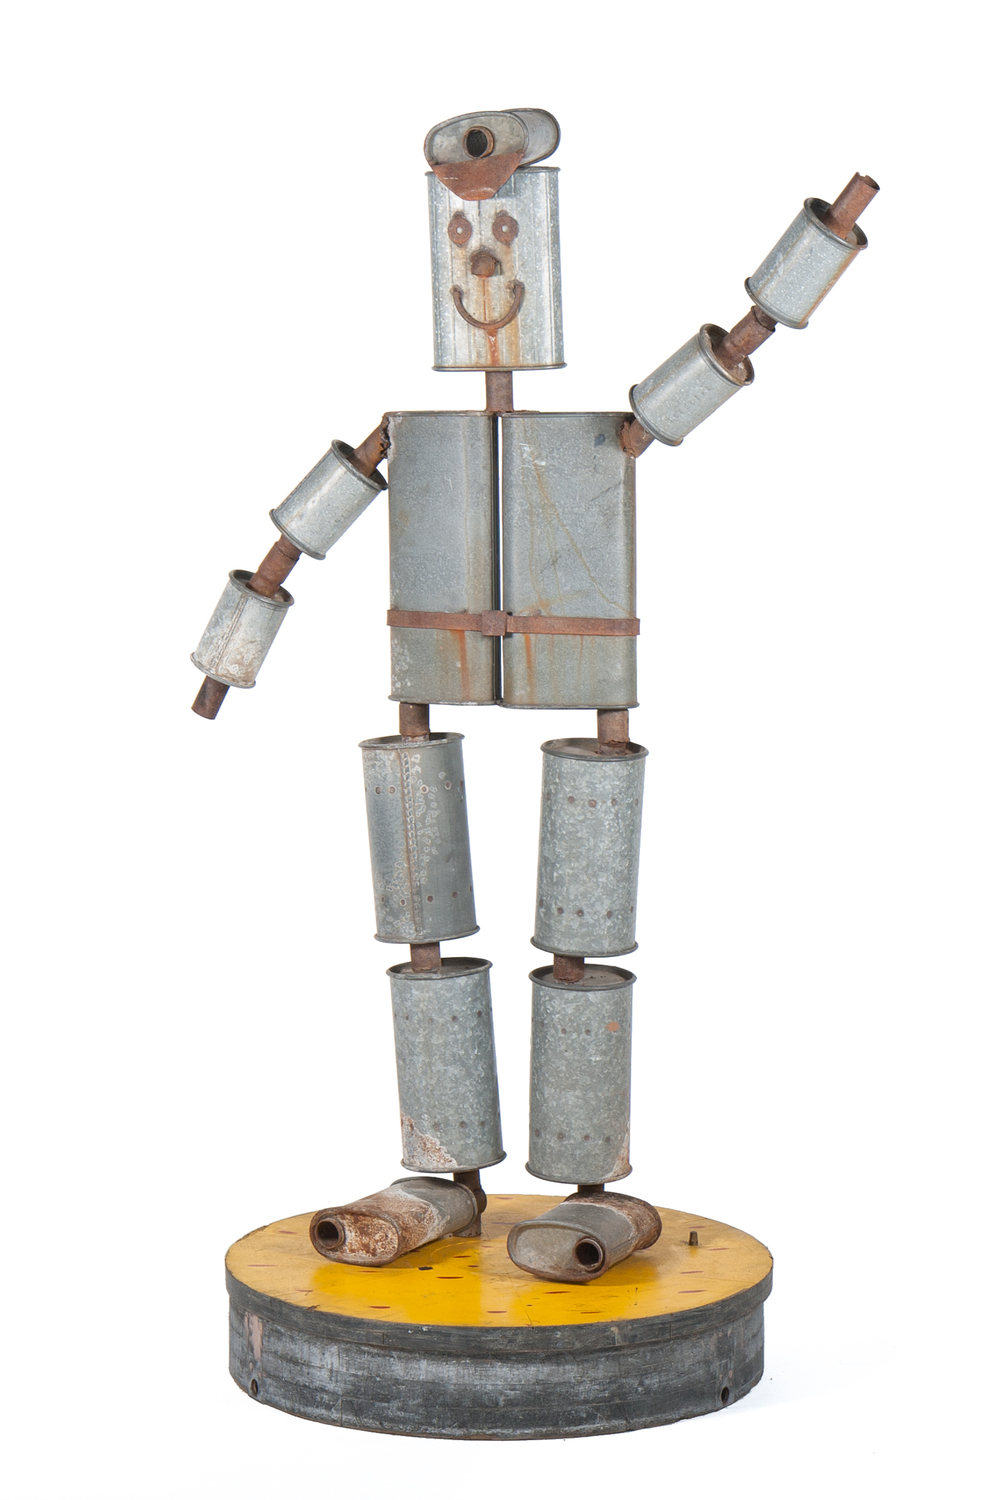 Promotional Muffler Man / Robot from Garage (Lehighton, PA circa 1950) - Height 5'7""